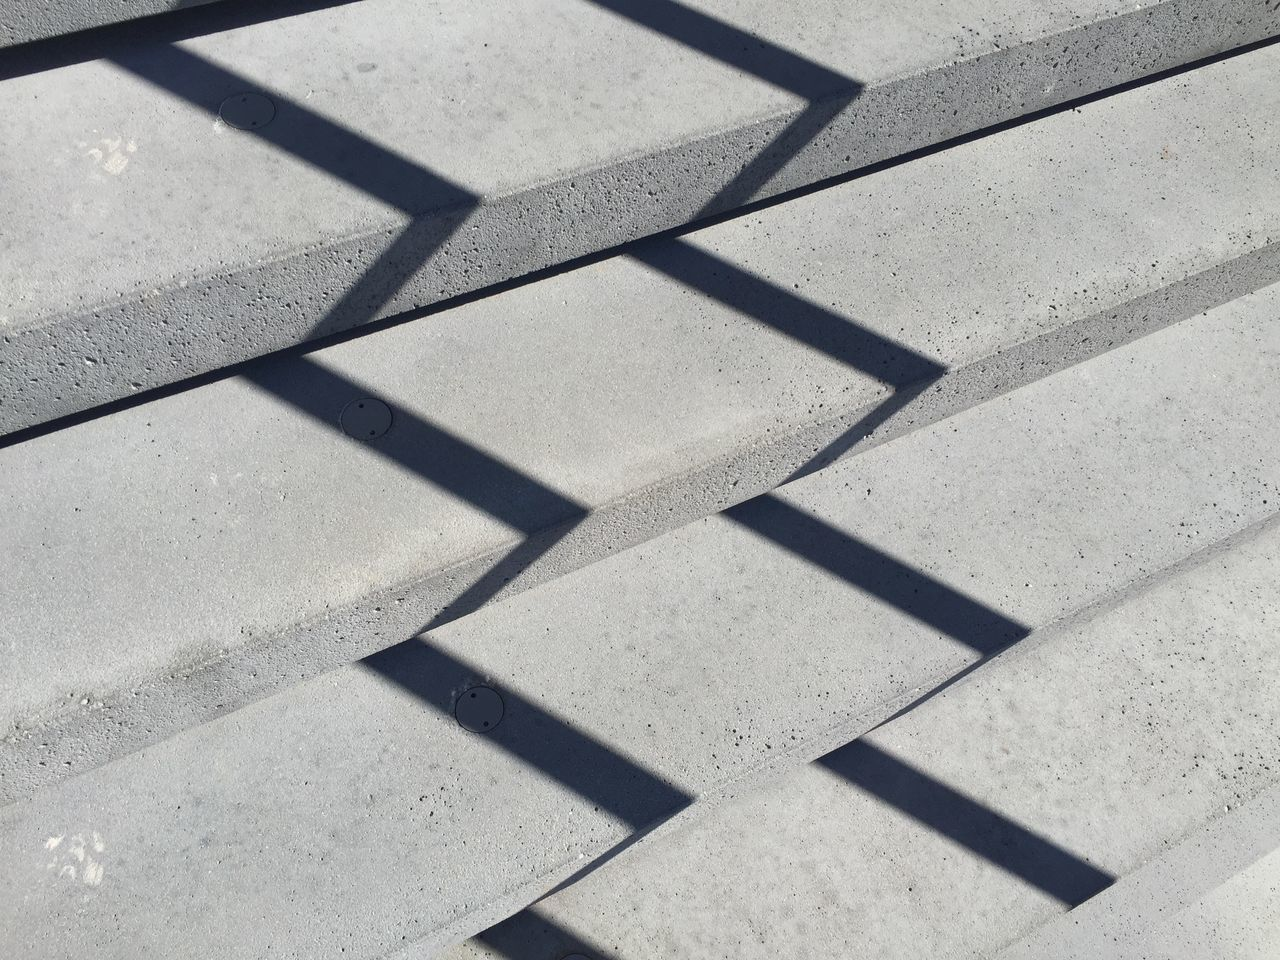 Shadow Sunlight High Angle View Flooring Focus On Shadow Repetition Outdoors Geometric Shape No People Stone Material Concrete Precast Concrete